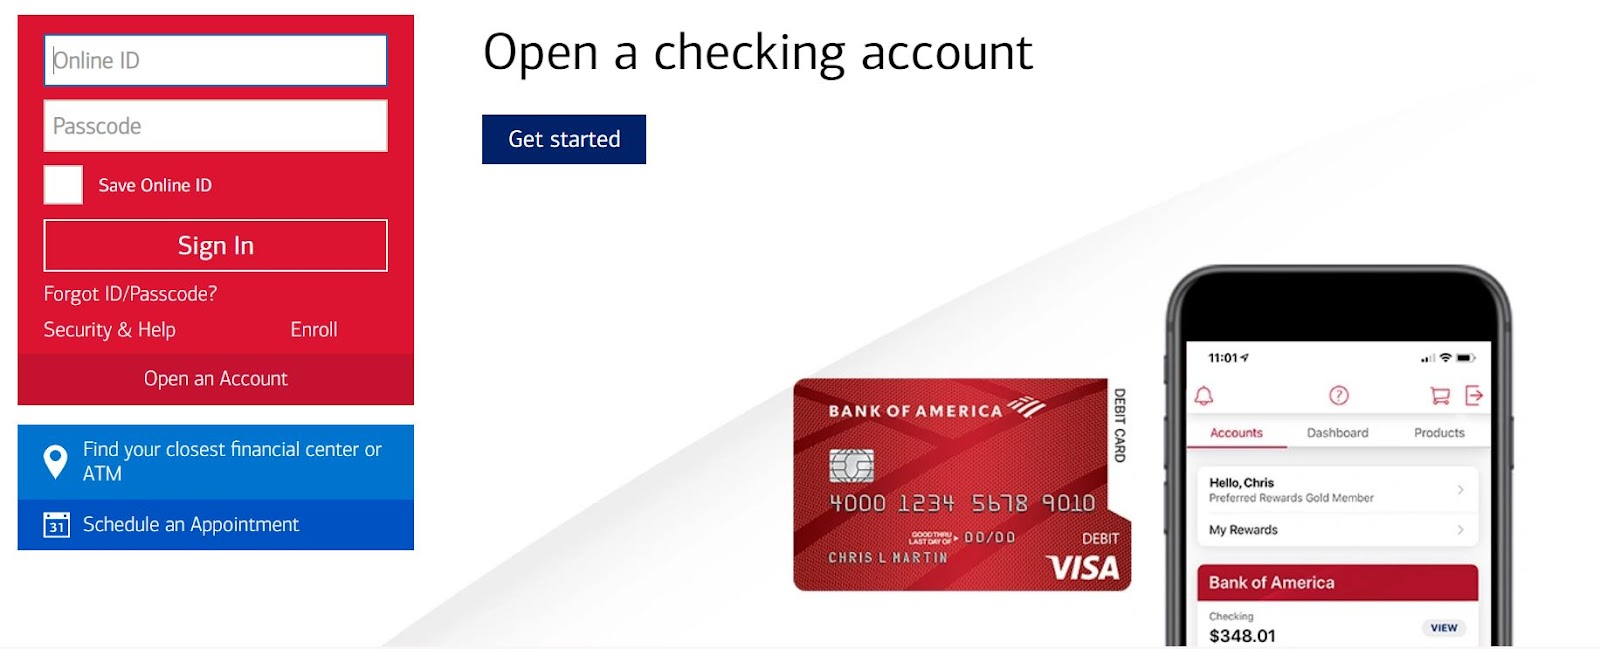 Open a checking account at Bank of America for fast financial transactions